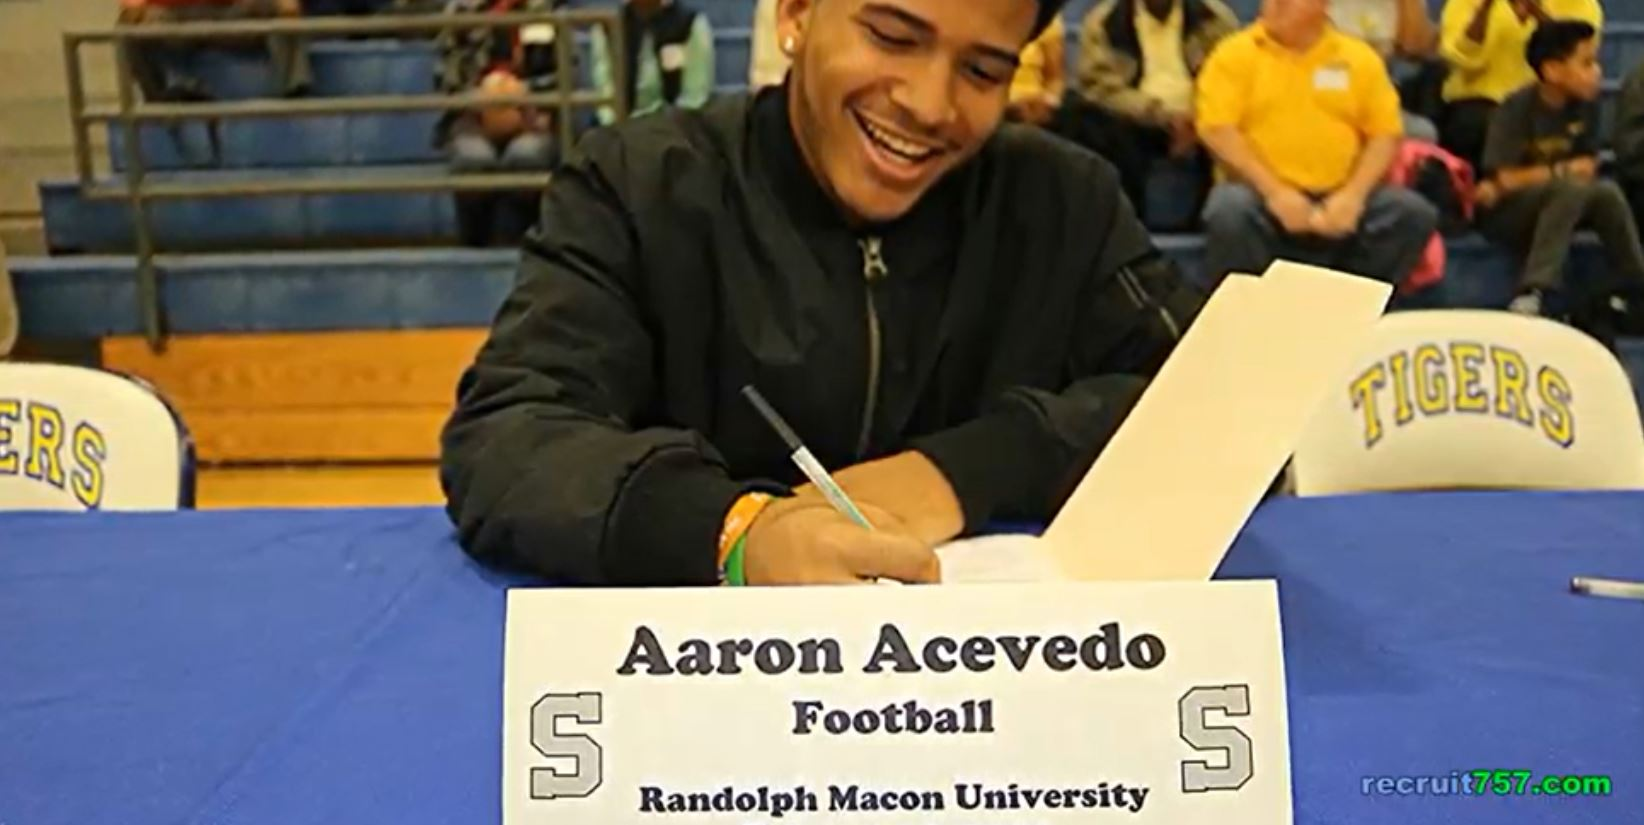 Oscar Smith - Aaron Acevedo